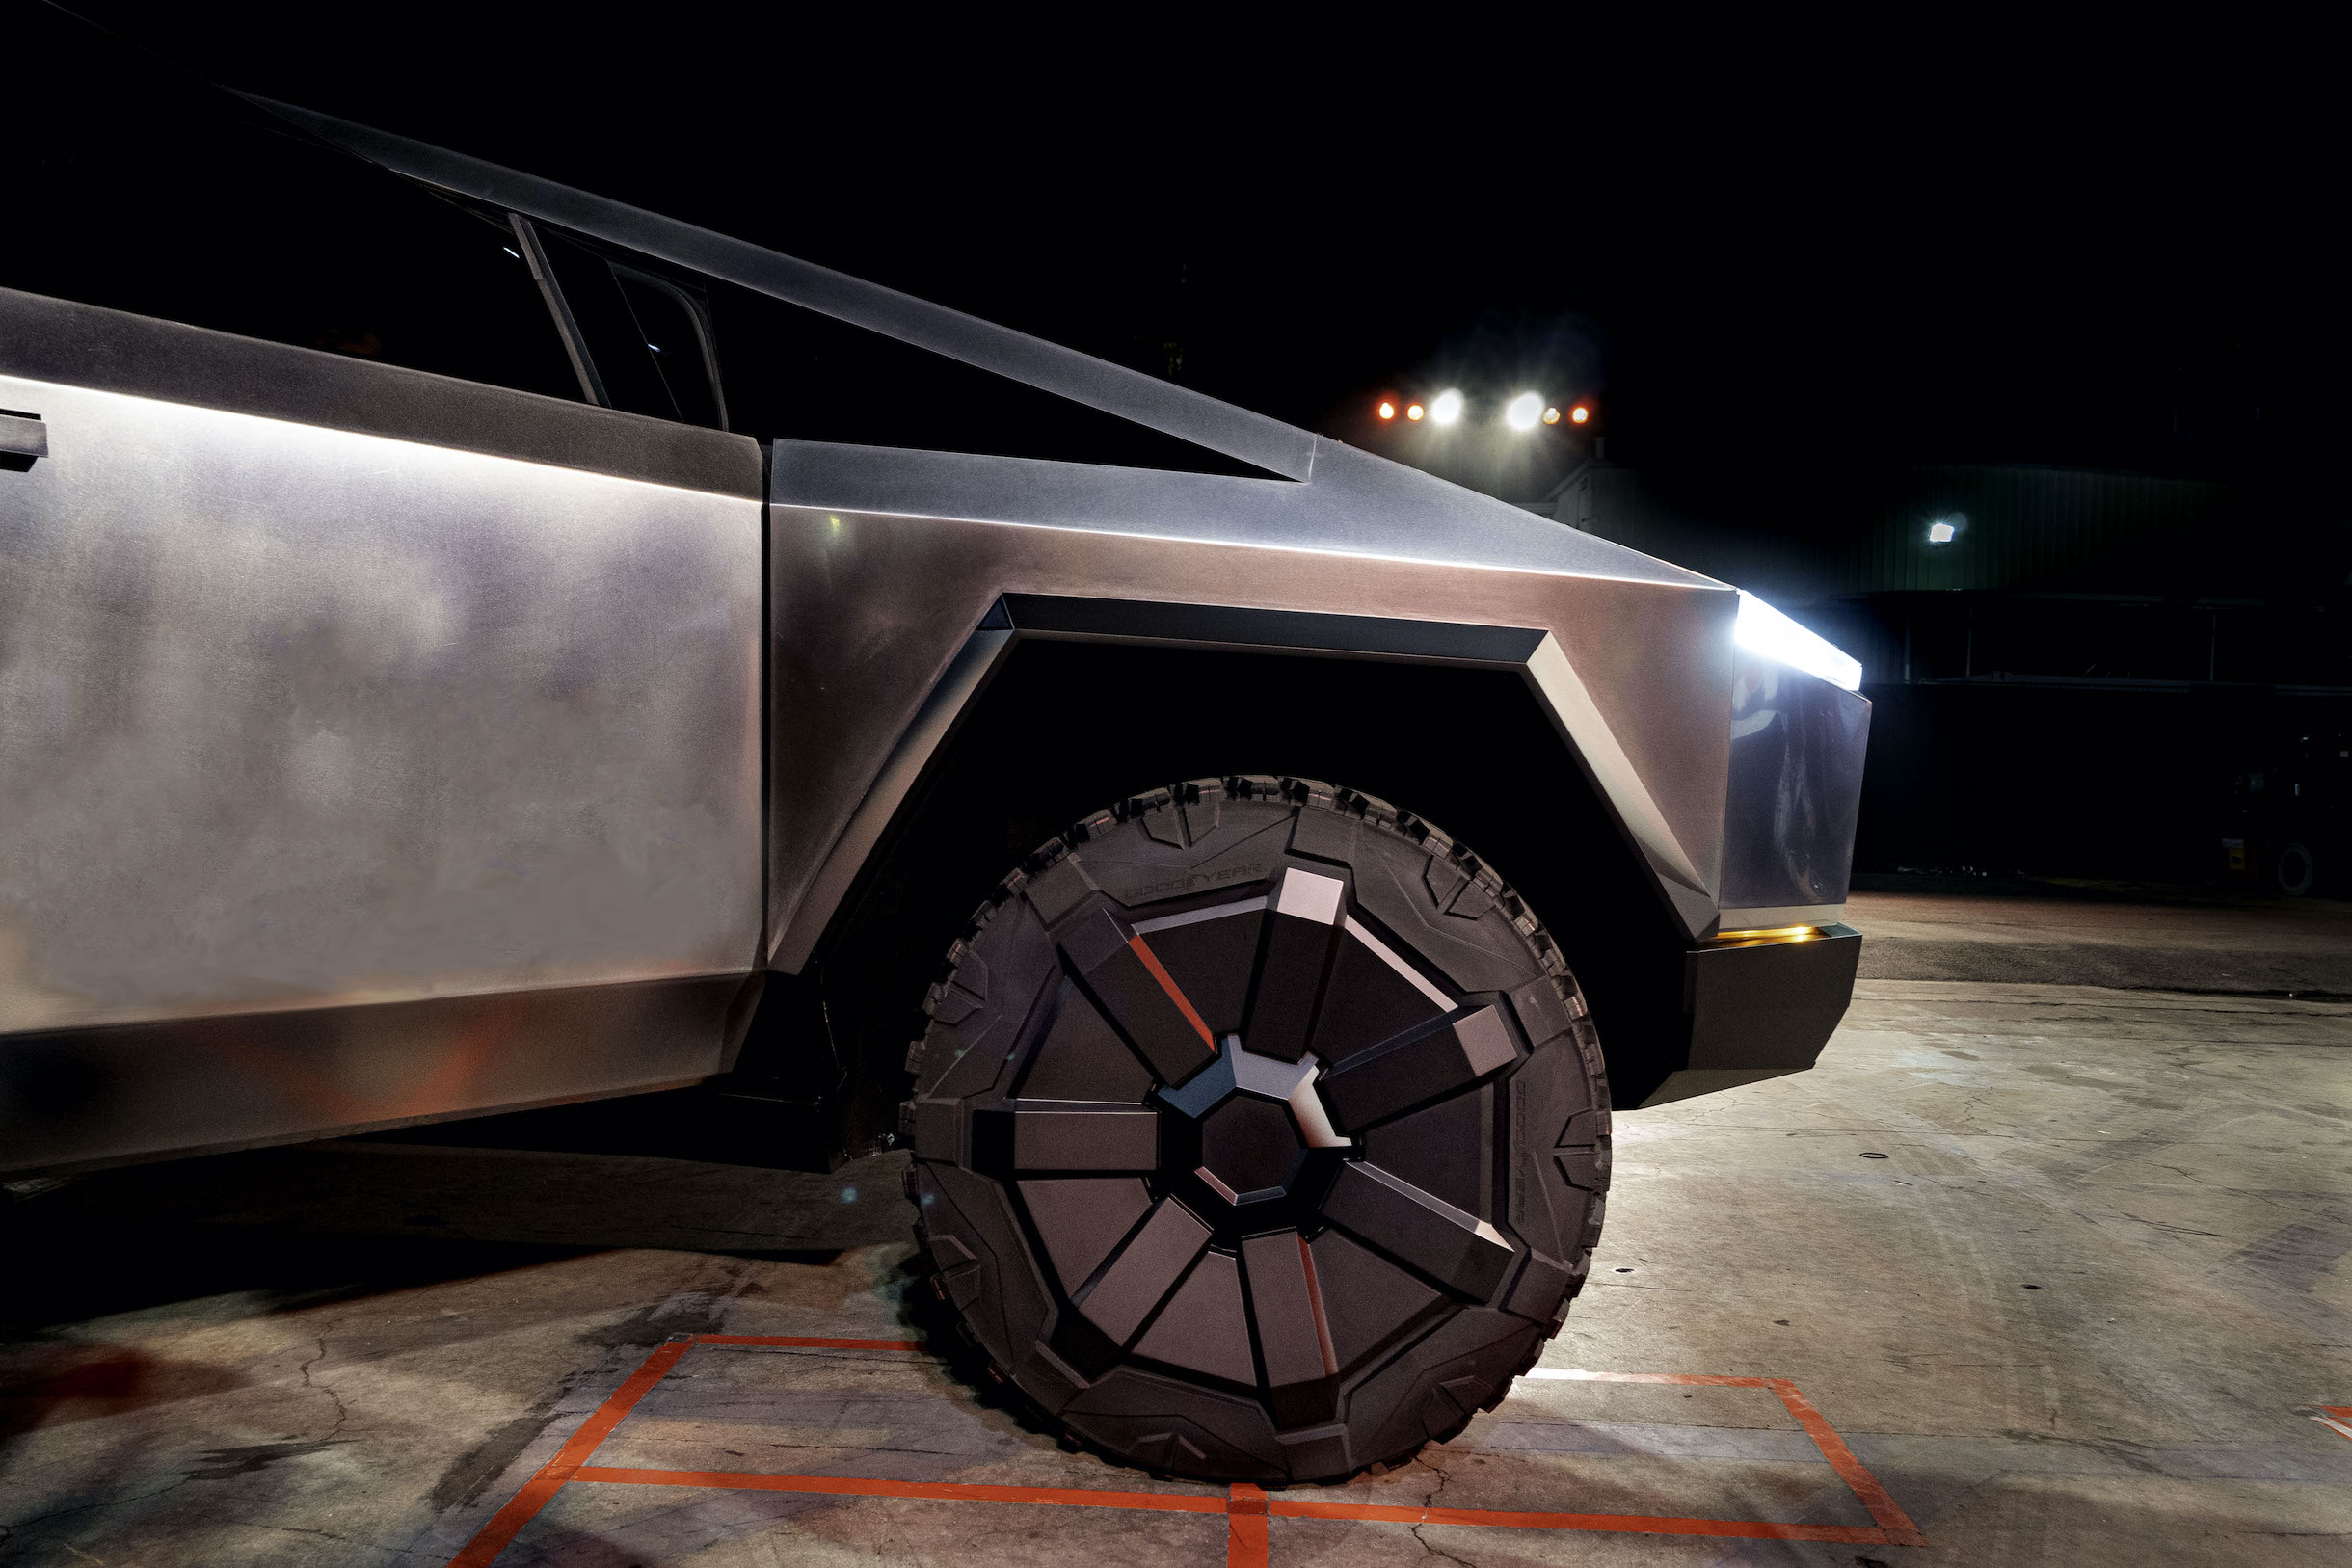 Tesla Cybertruck futuristic aero wheel makes debut in Los Angeles unveiling event on Nov. 21, 2019 (Photo: Teslarati)